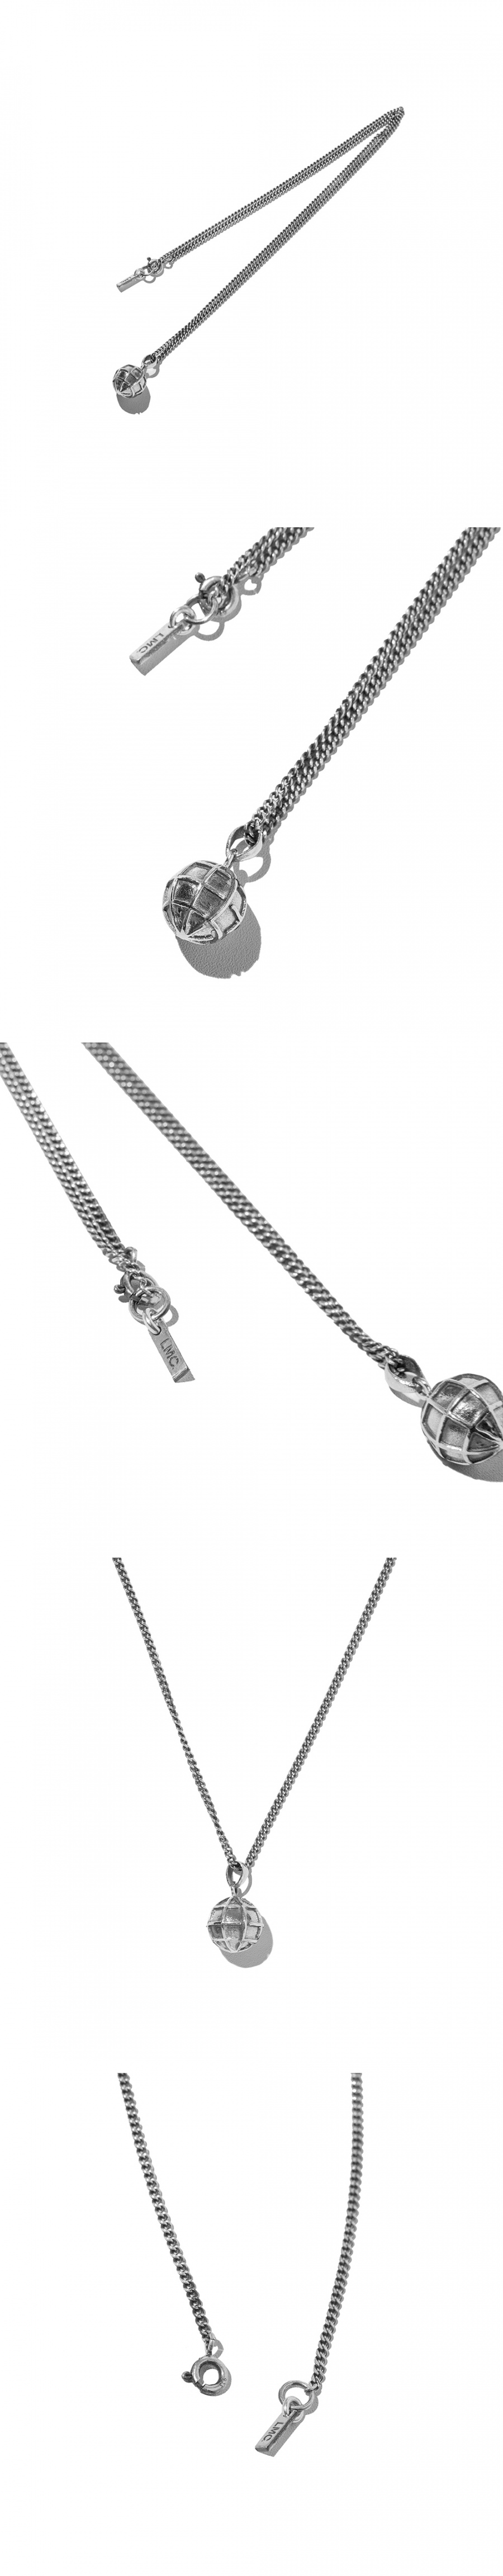 엘엠씨(LMC) LMC GLOBE SILVER NECKLACE